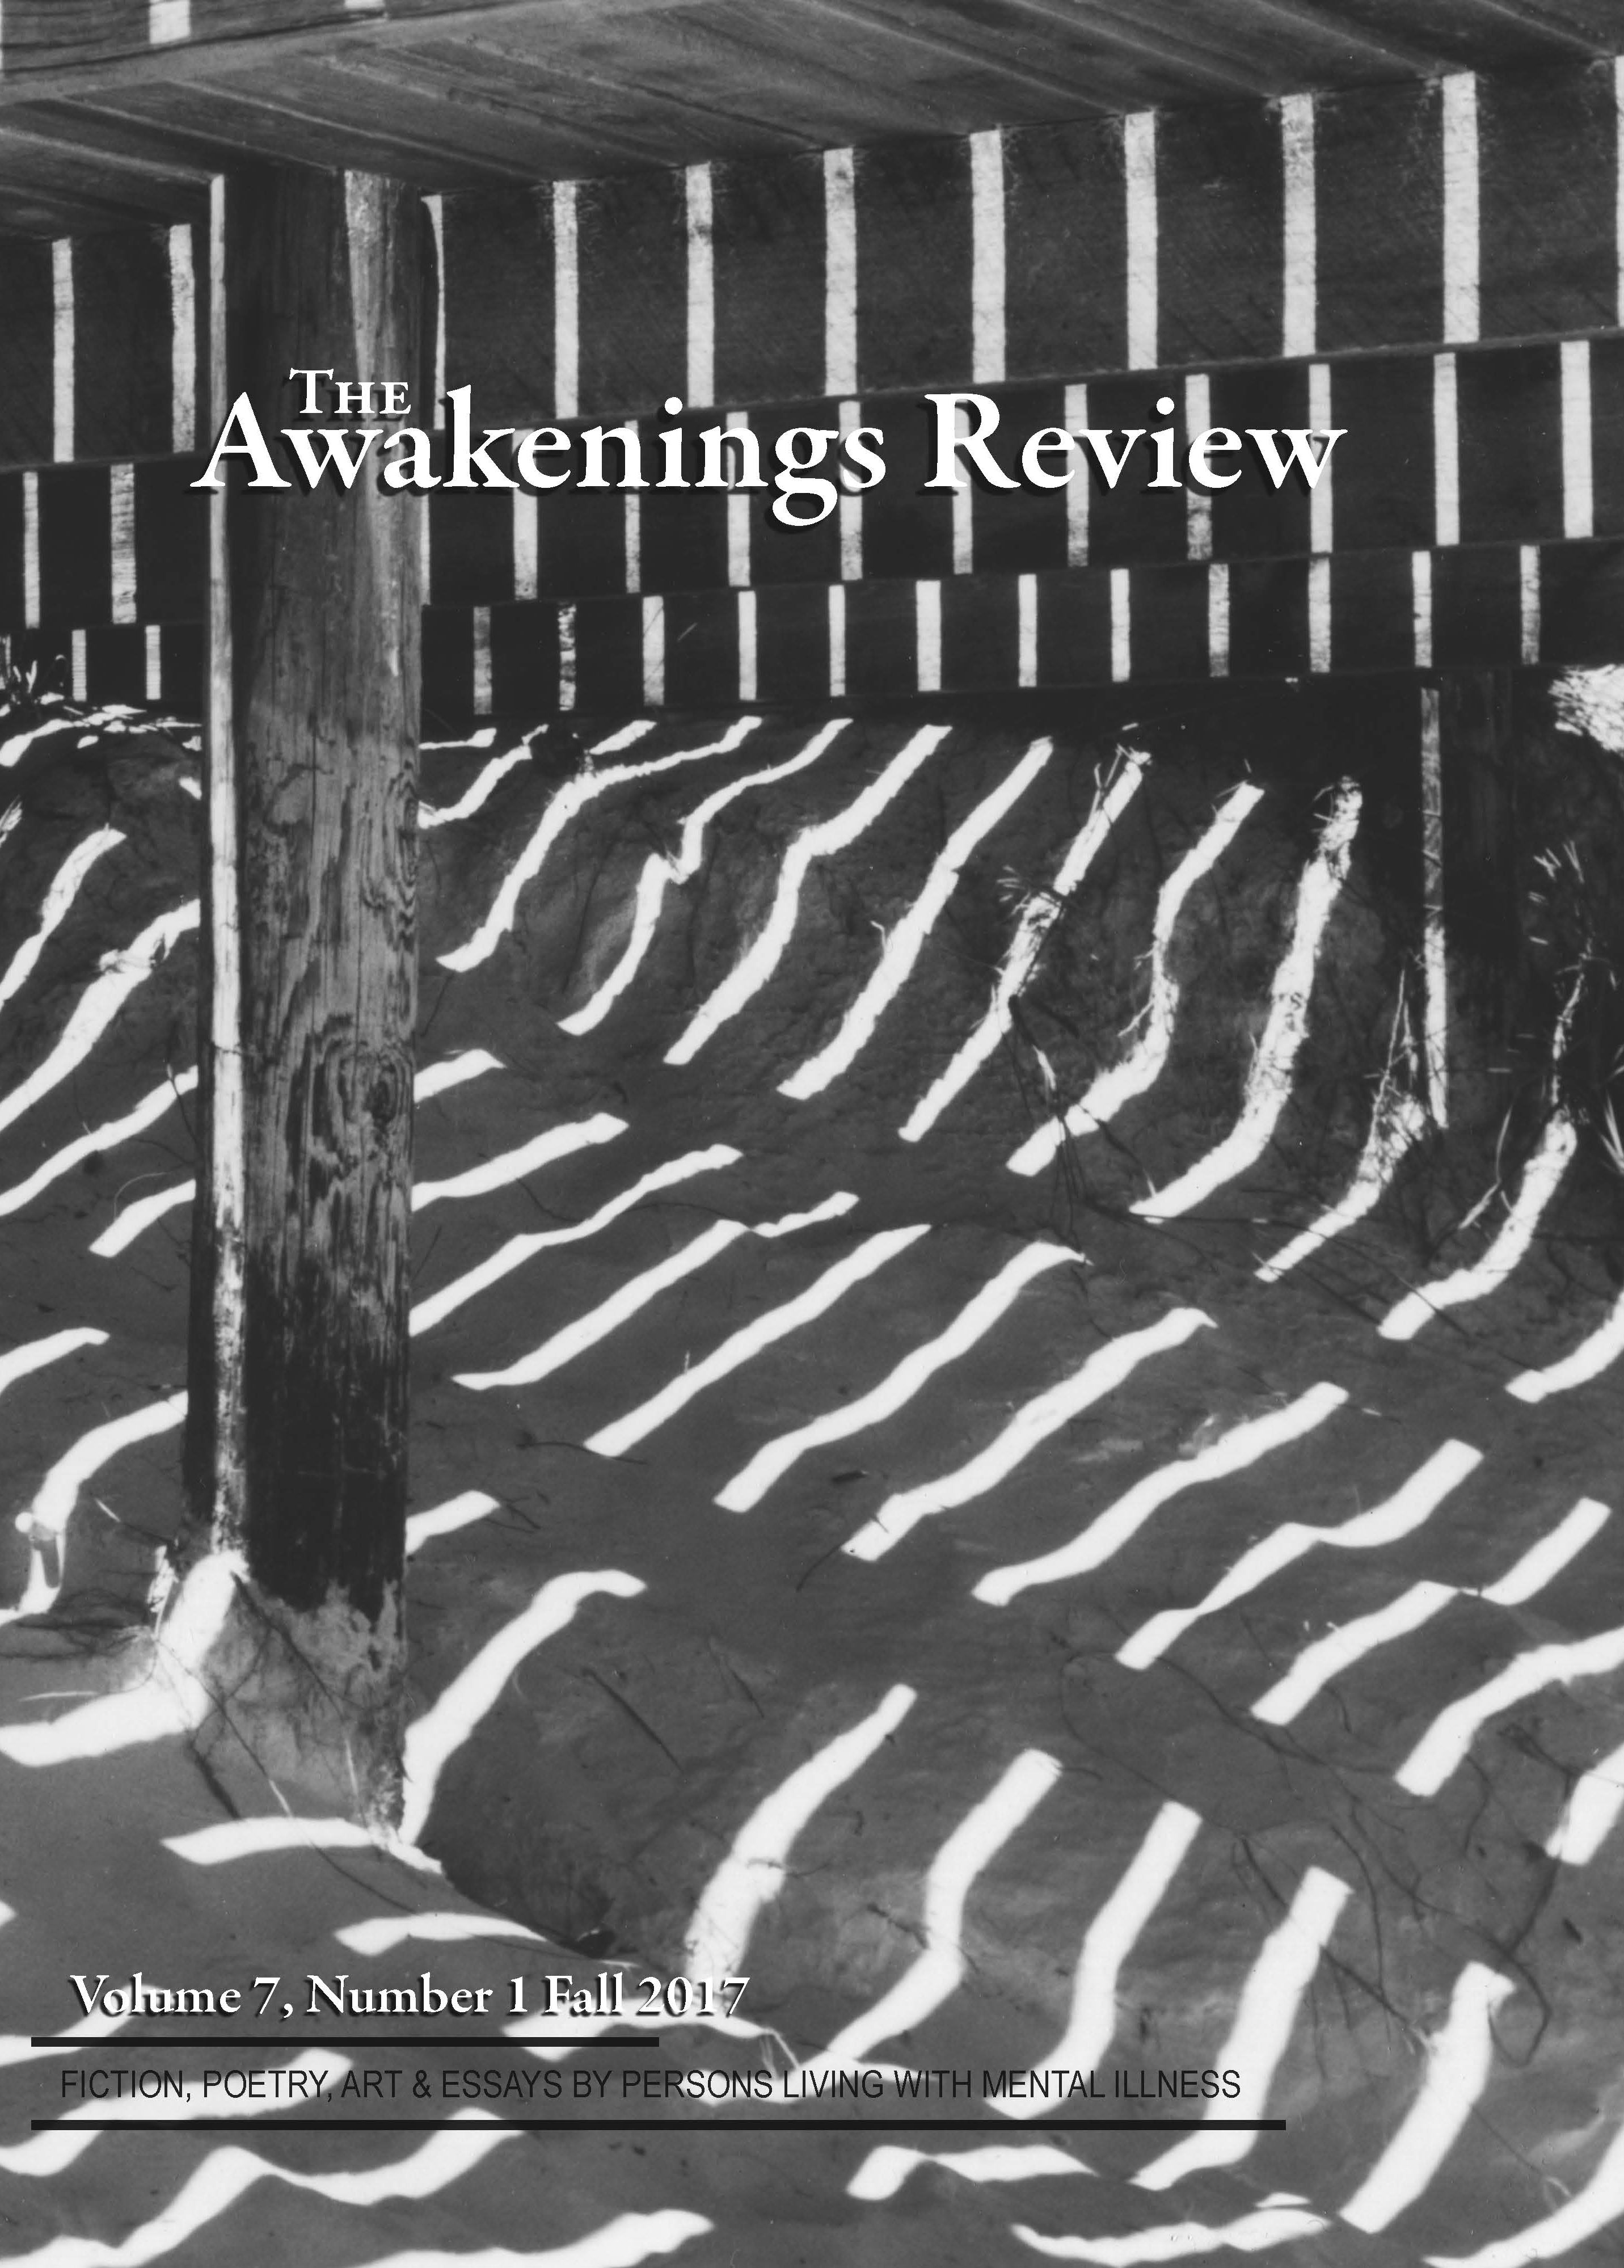 The Awakenings Review, Volume 7 Number 1, Fall 2017